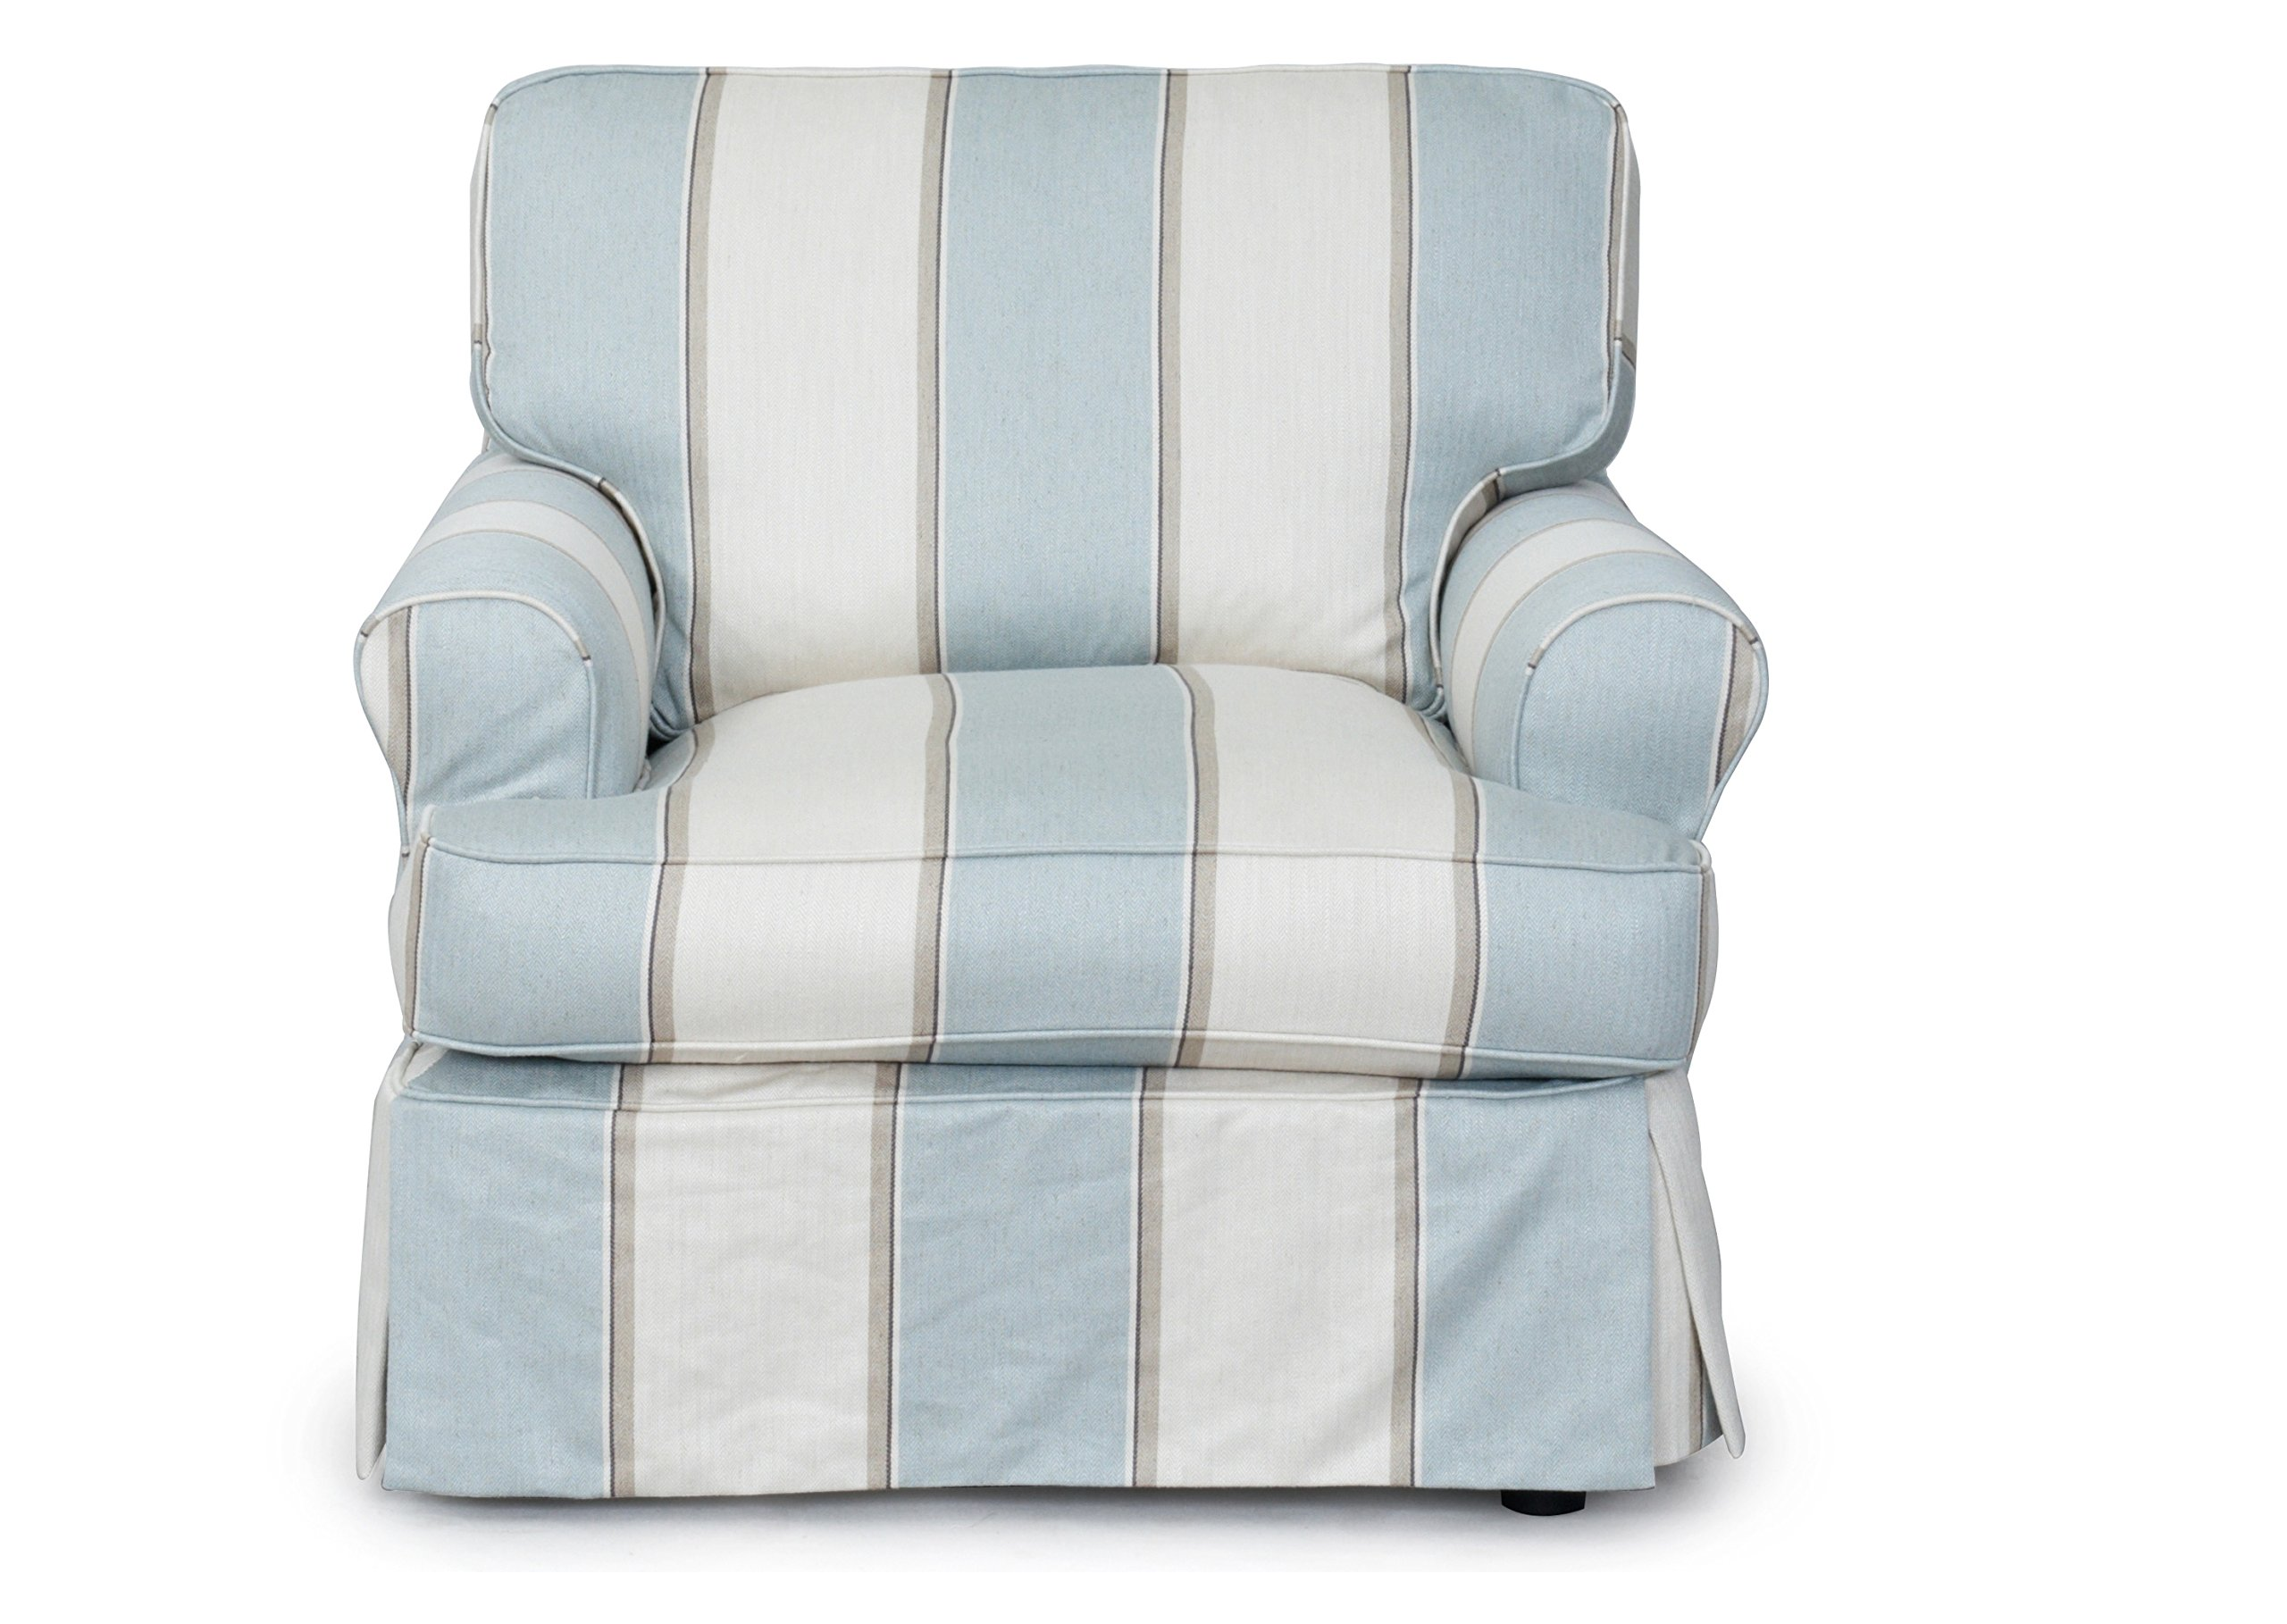 Sunset Trading Horizon Slipcovered Chair, Blue and Off White by Sunset Trading